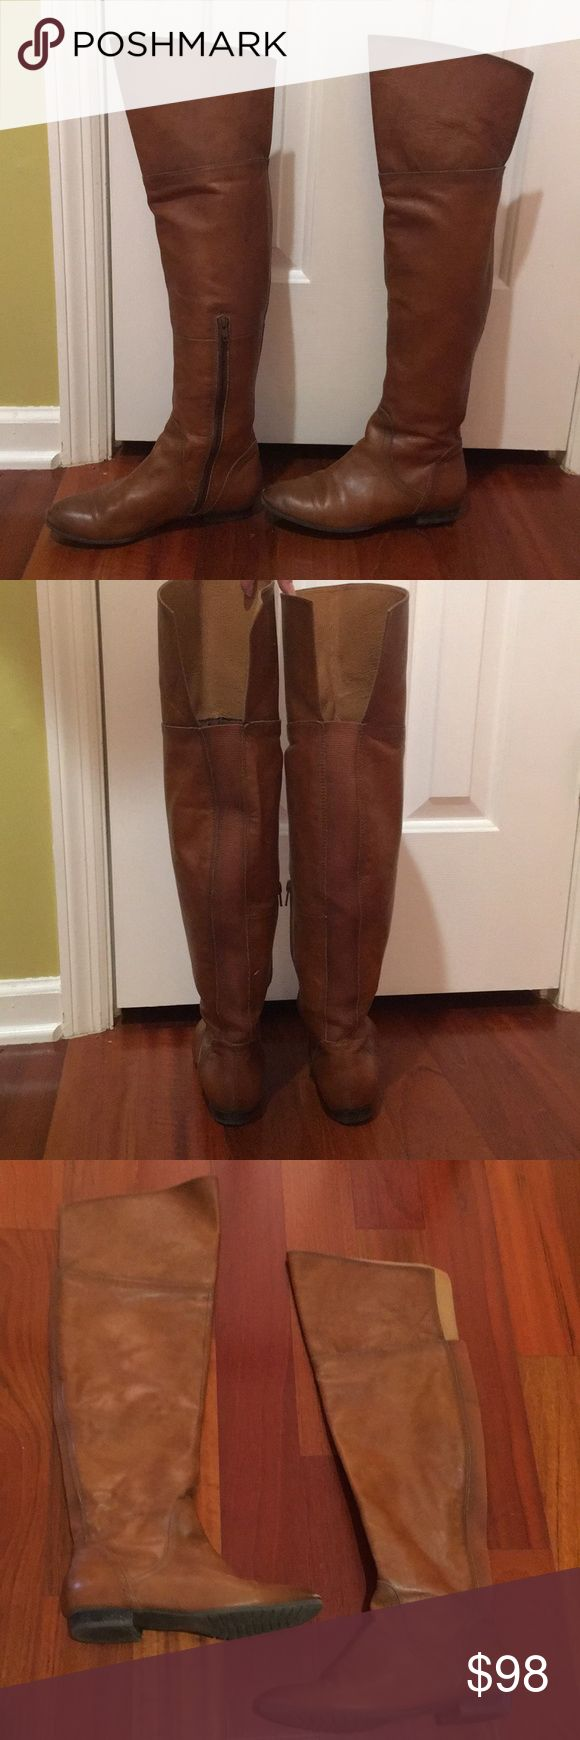 Aldo Leather Over the knee Boots size 6.5 Aldo leather camel color over the knee boots size 6.5. EUC no flaws worn once. Still look brand new. Stretch elastic to the back of boots for a perfect fit, and side zip closure. MRSP 180$. These beauties are still available in stores. Offers will be considered. Free gift with purchase. Aldo Shoes Over the Knee Boots